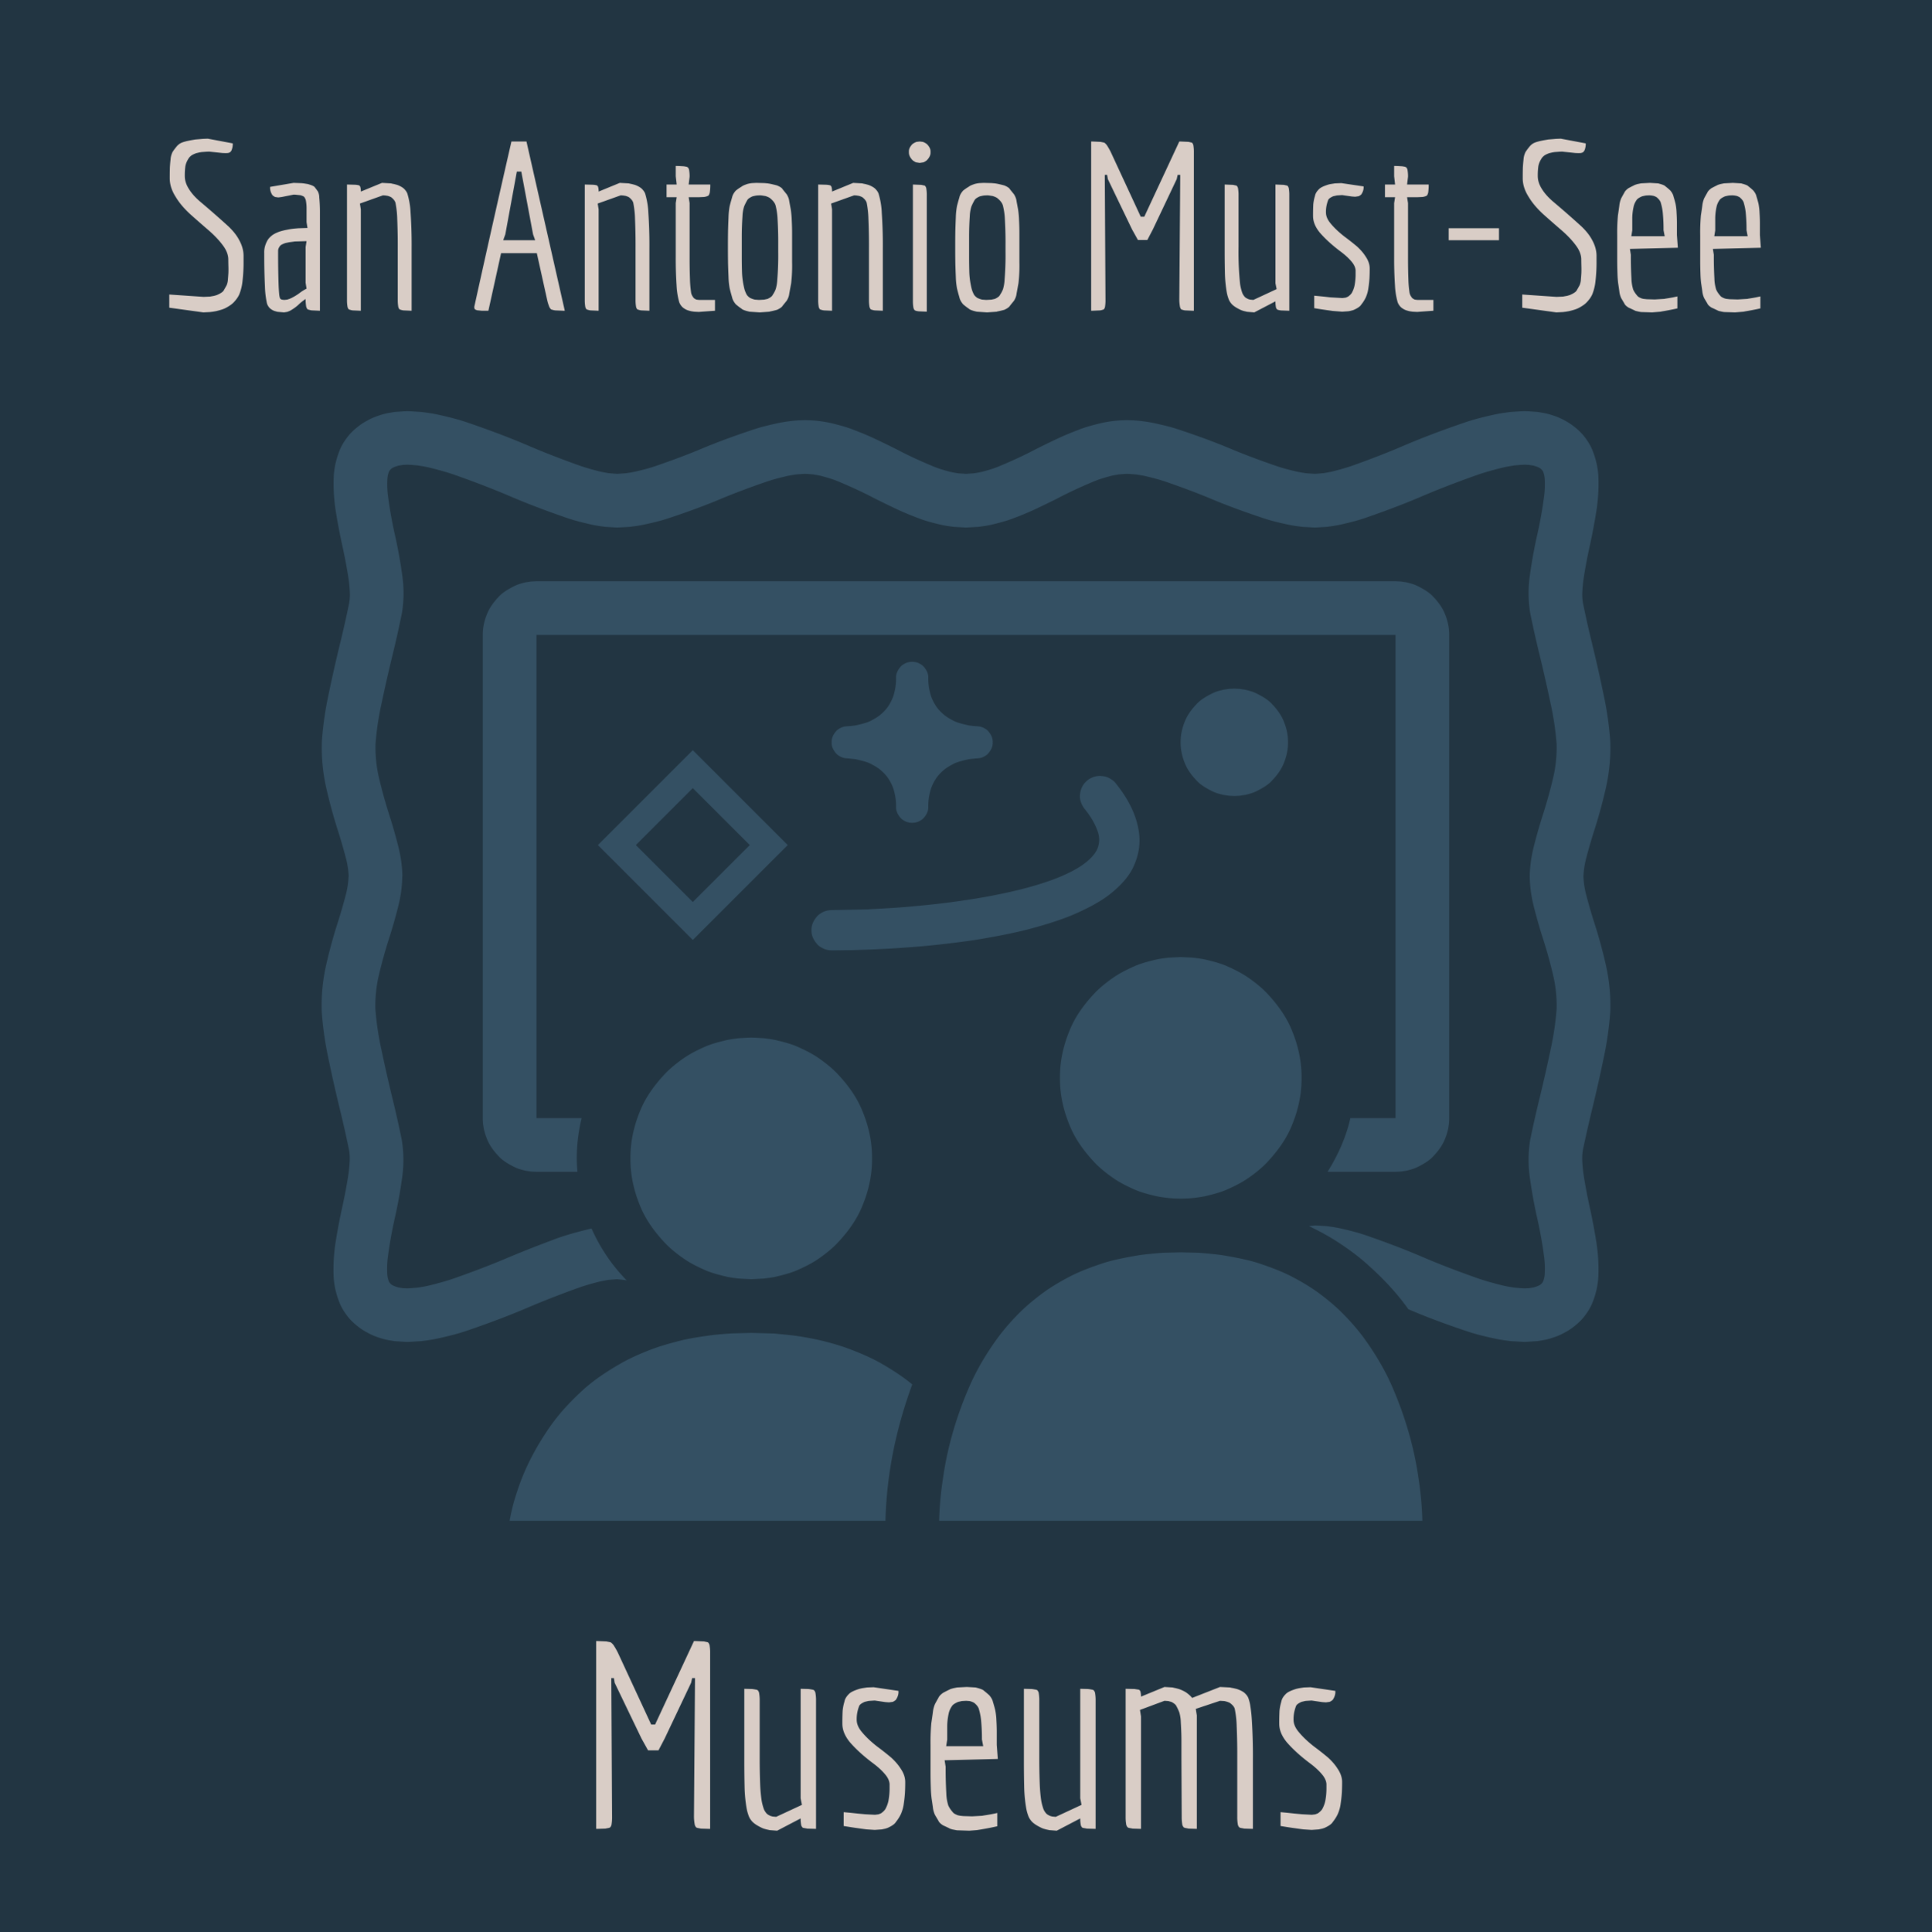 must-see museums.png